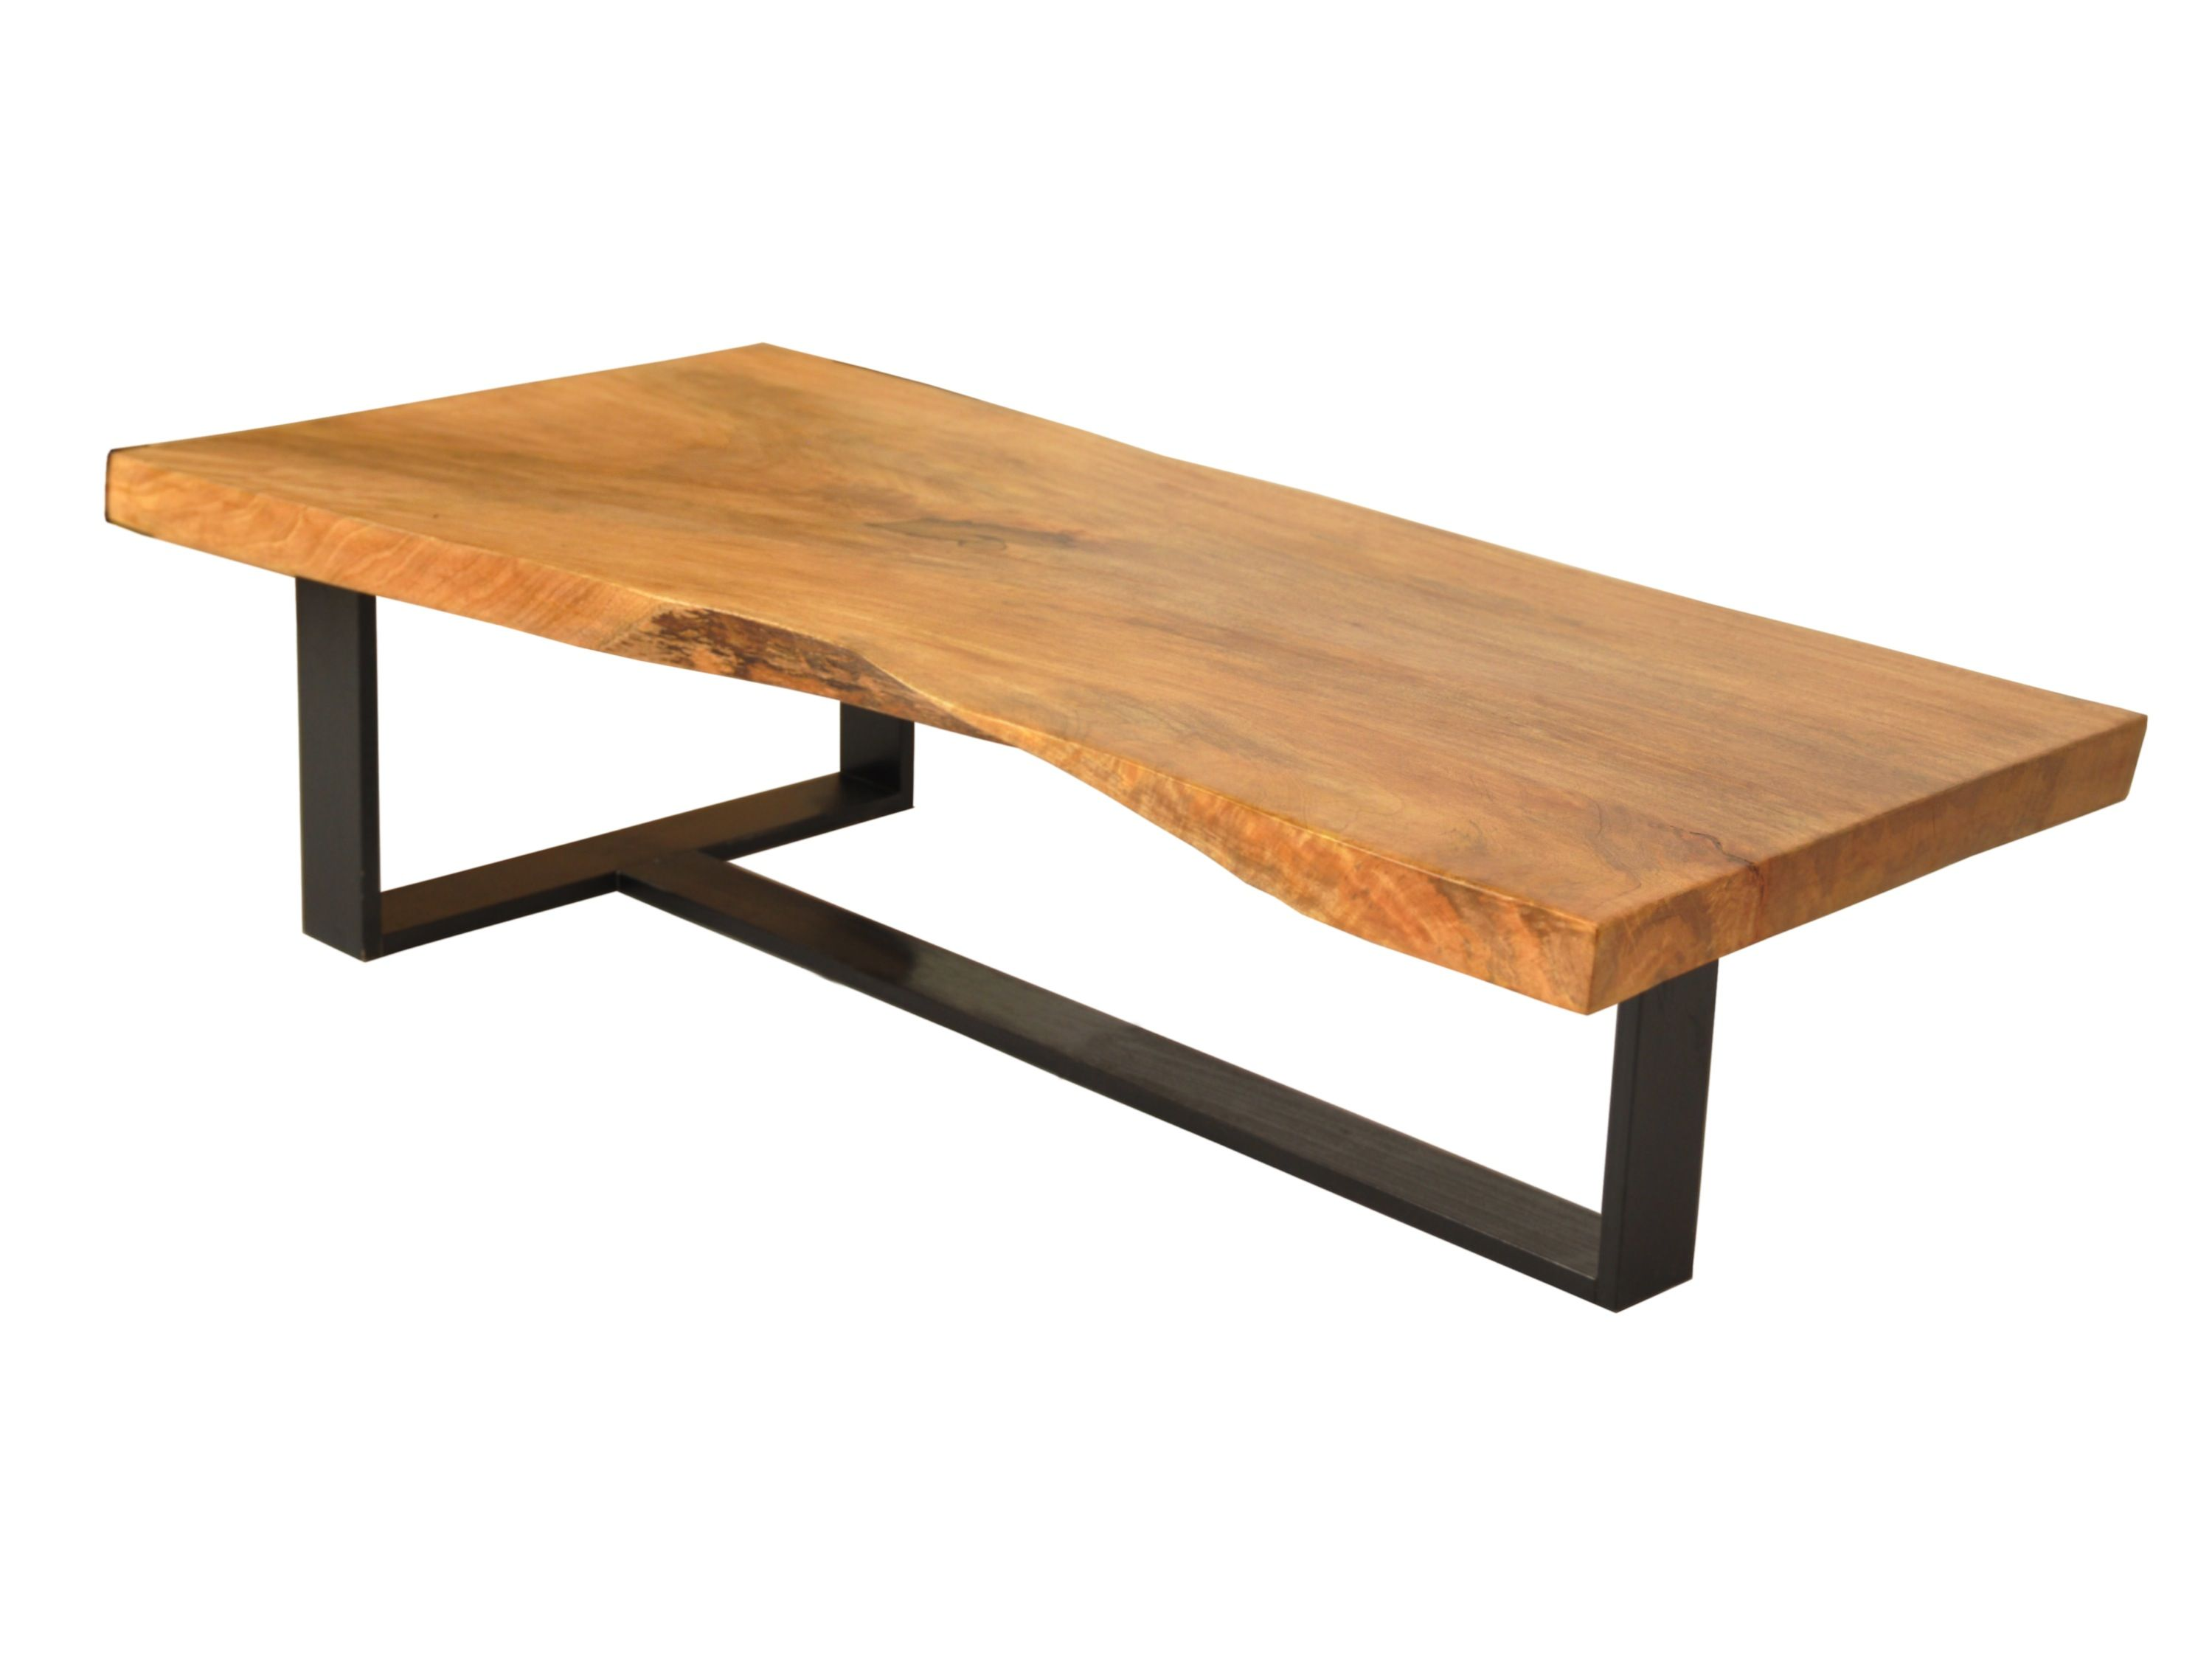 Single Slab Coffee Table Blackened Metal Base Solid Wood Live Edge Coffee Table Made With A